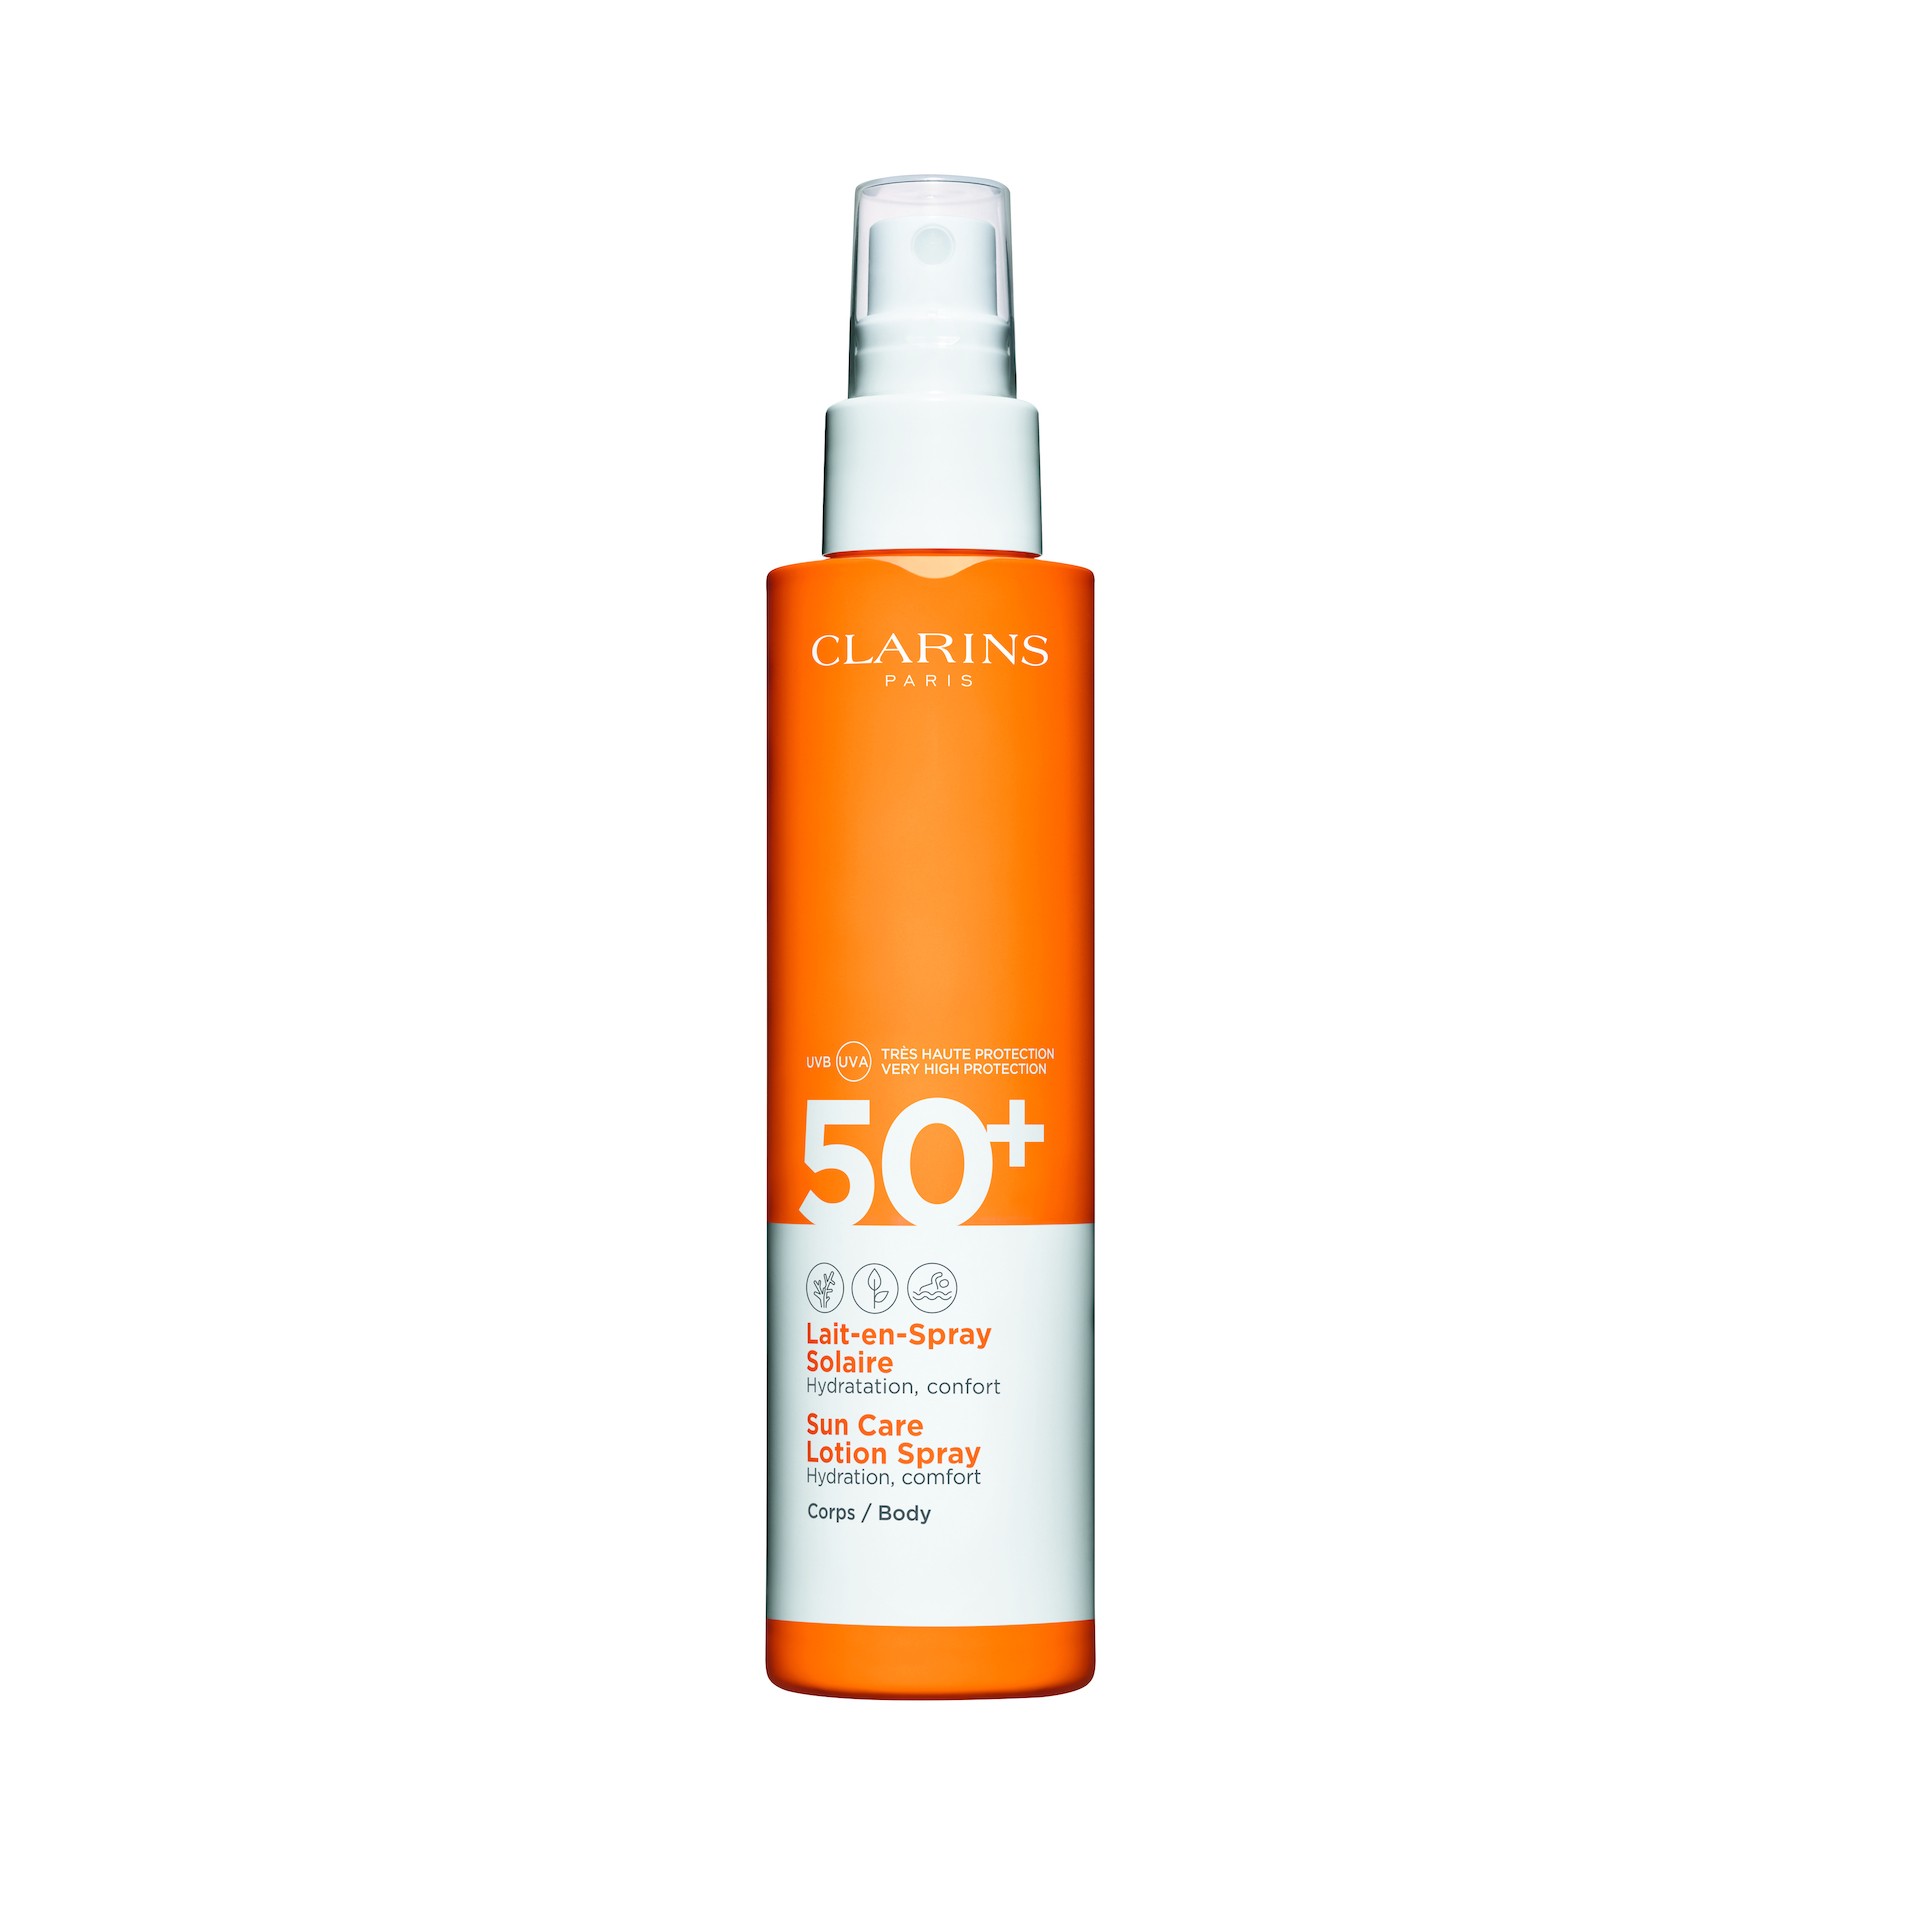 Sun Care Body Lotion Spray SPF50+ 150 ml